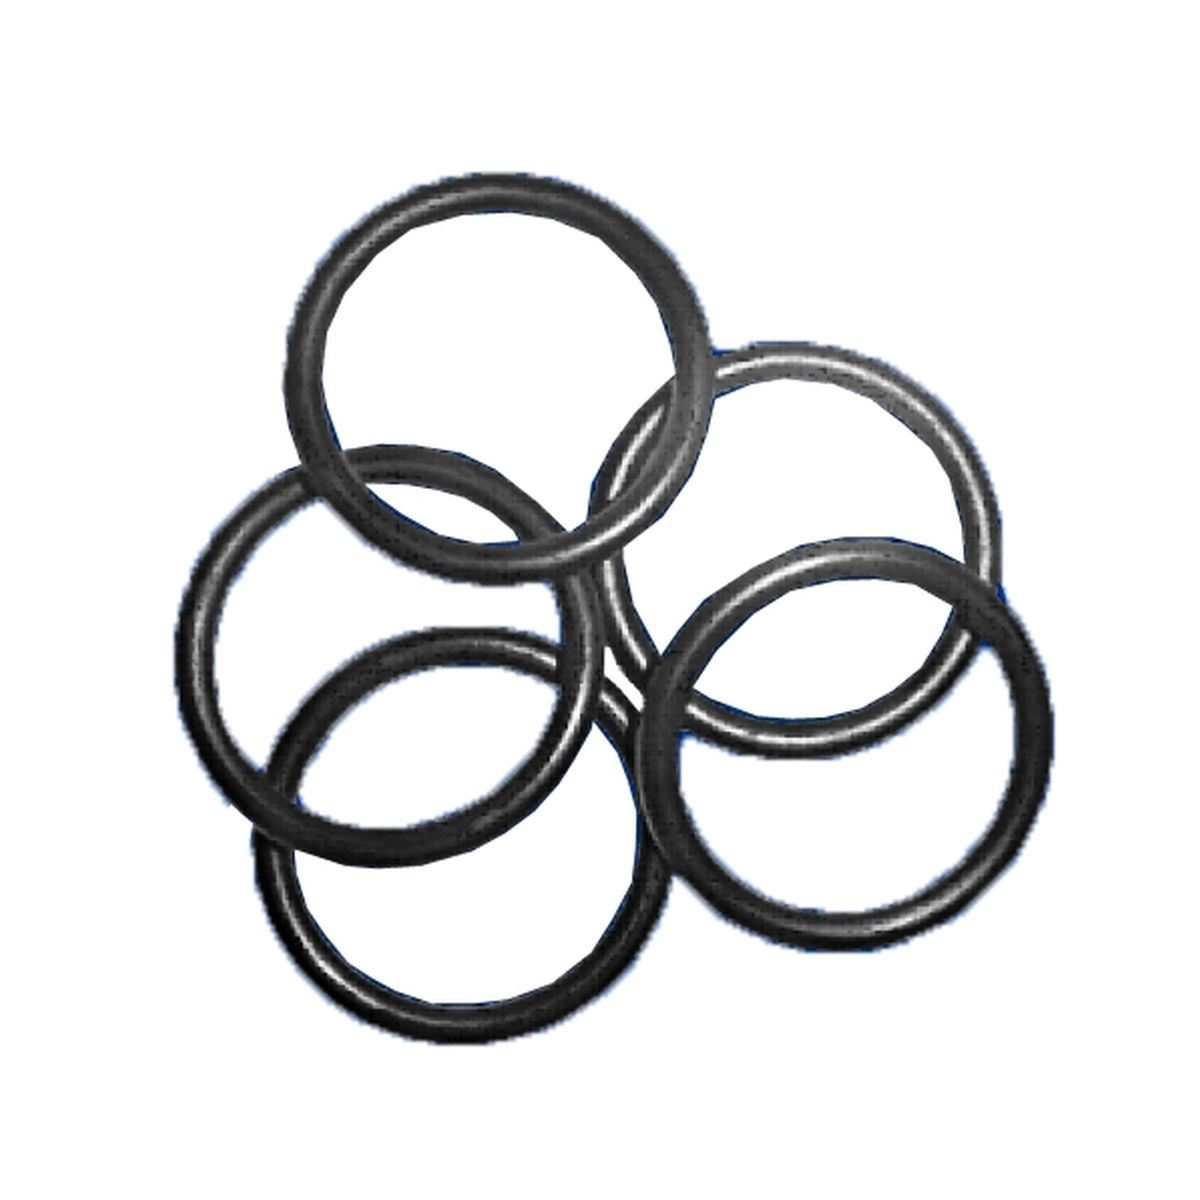 AW Motorcycle Parts. O-Ring 2.8mm x 1.9mm (Per 10)